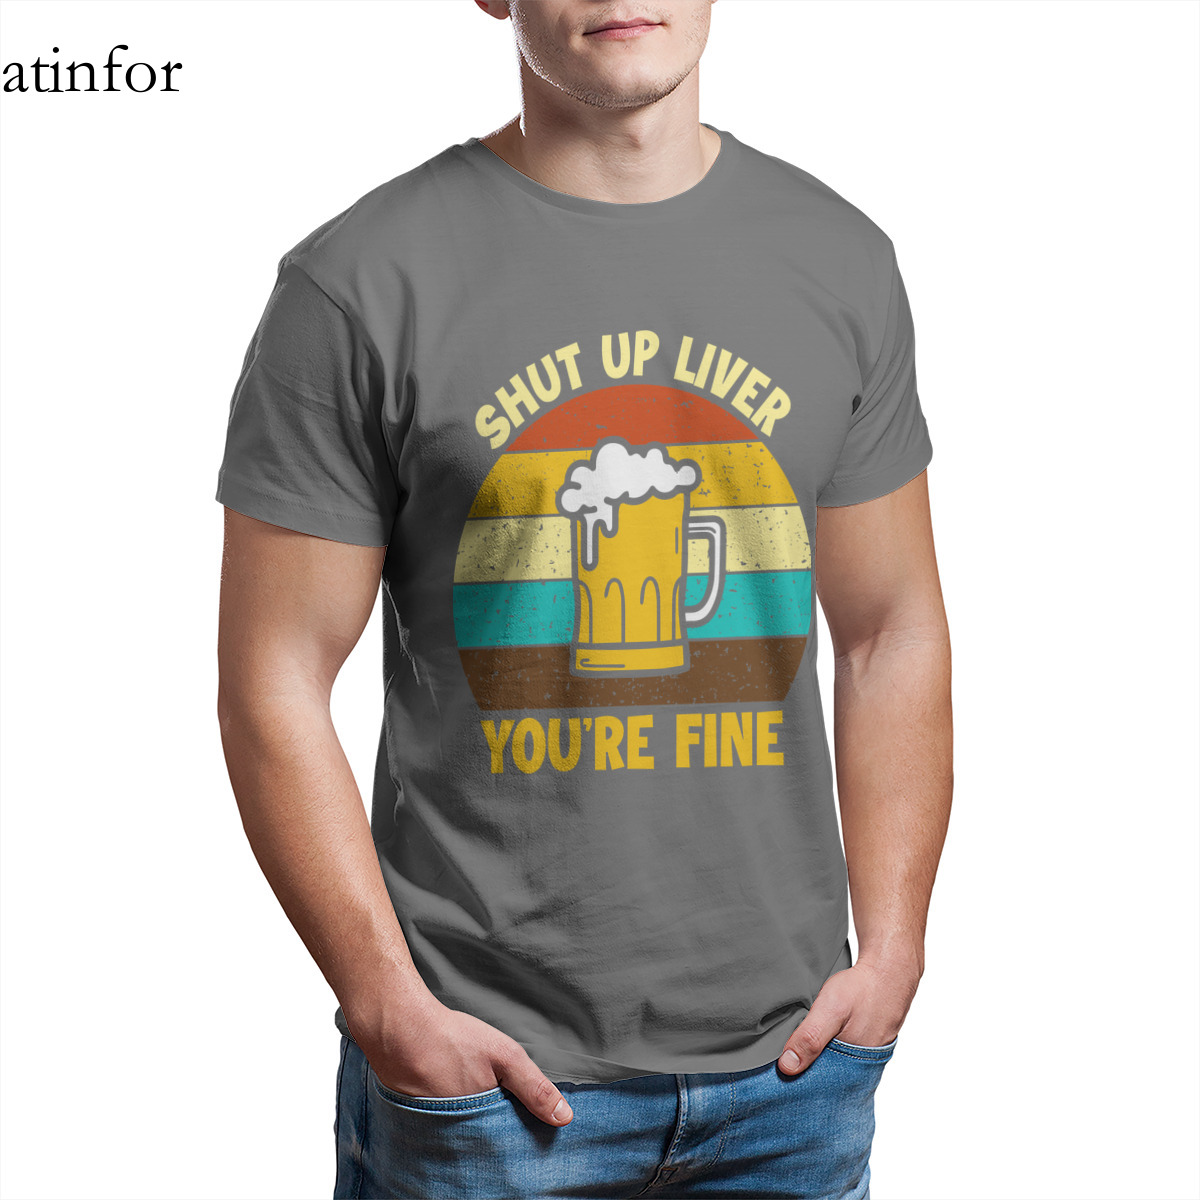 shut up liver your fine T-Shirt 100% Cotton Punk Anime Christmas  Couples Punk Gothic Style Red Short Sleeve Cool Tshirts 27335